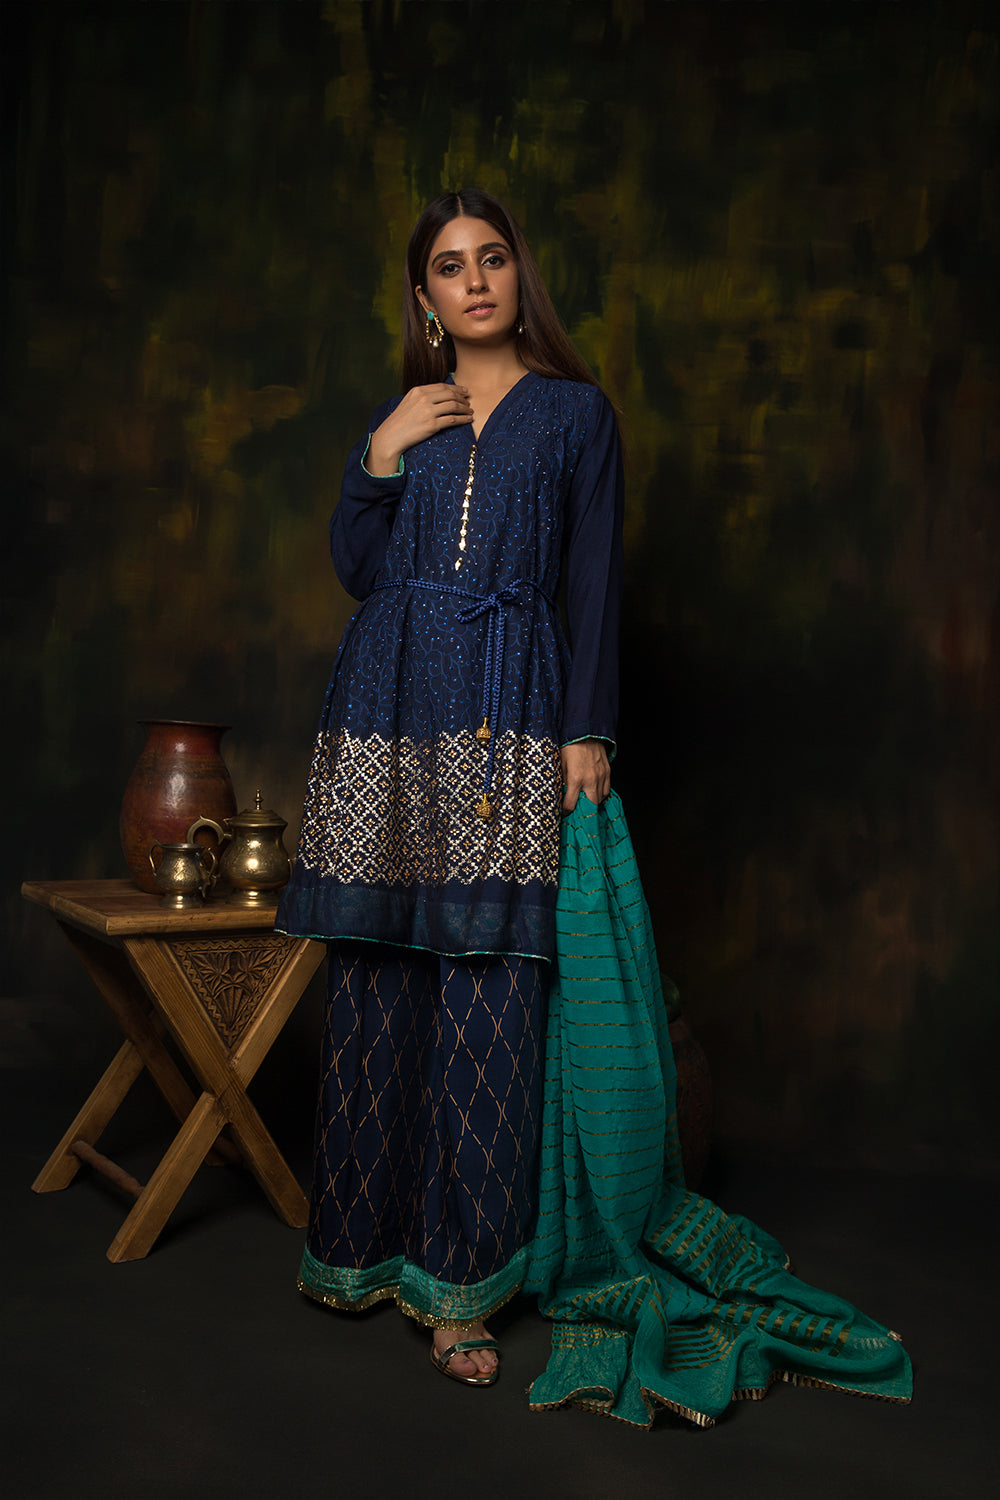 LDD-01313 | Navy Blue & Sea Green | Formal 3 Piece Suit  | Banarsi Khaddi Net